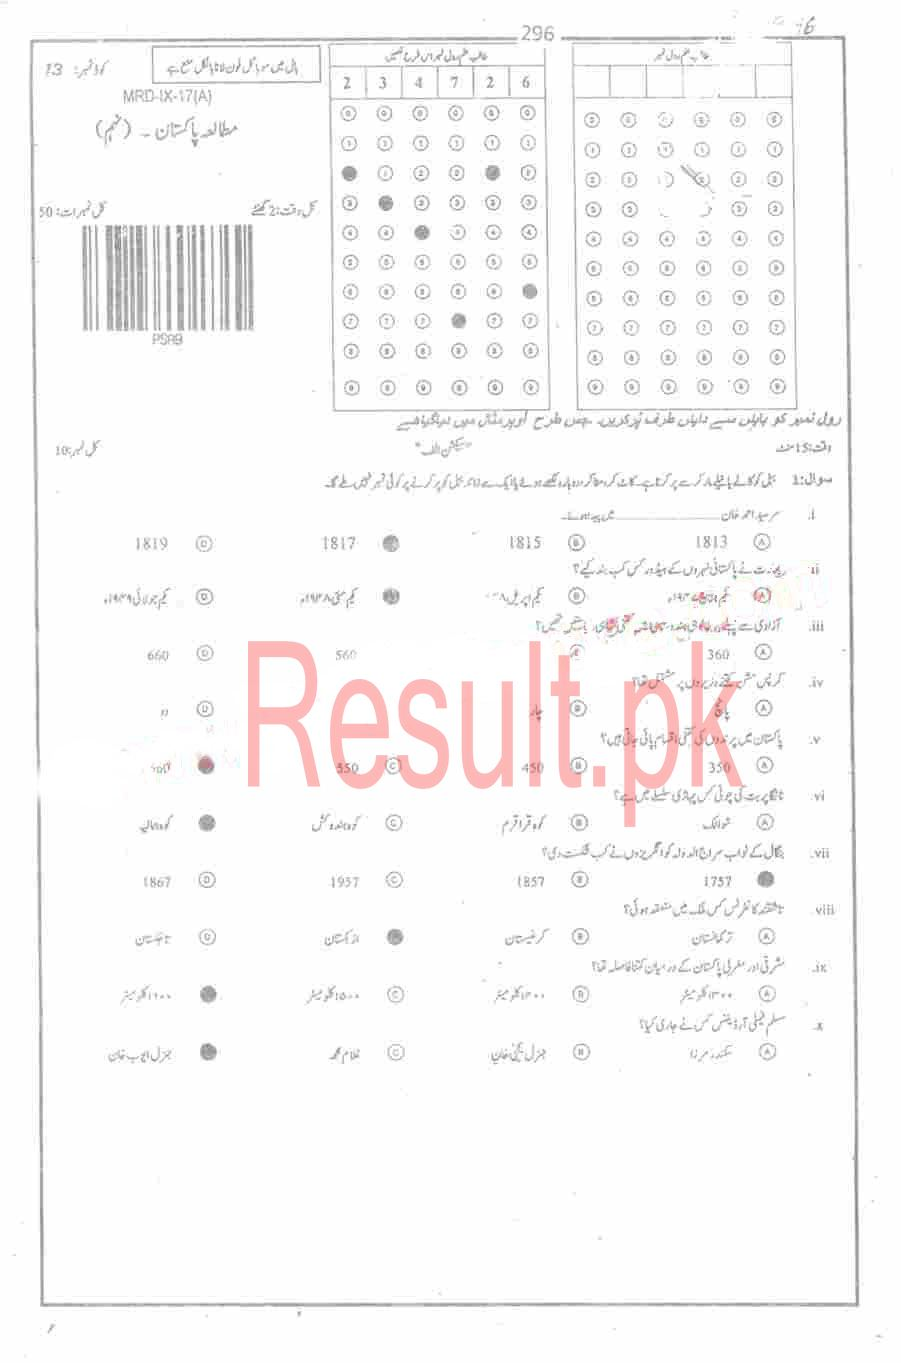 BISE Mardan Board Past Papers 2019 Matric, SSC Part 1 & 2